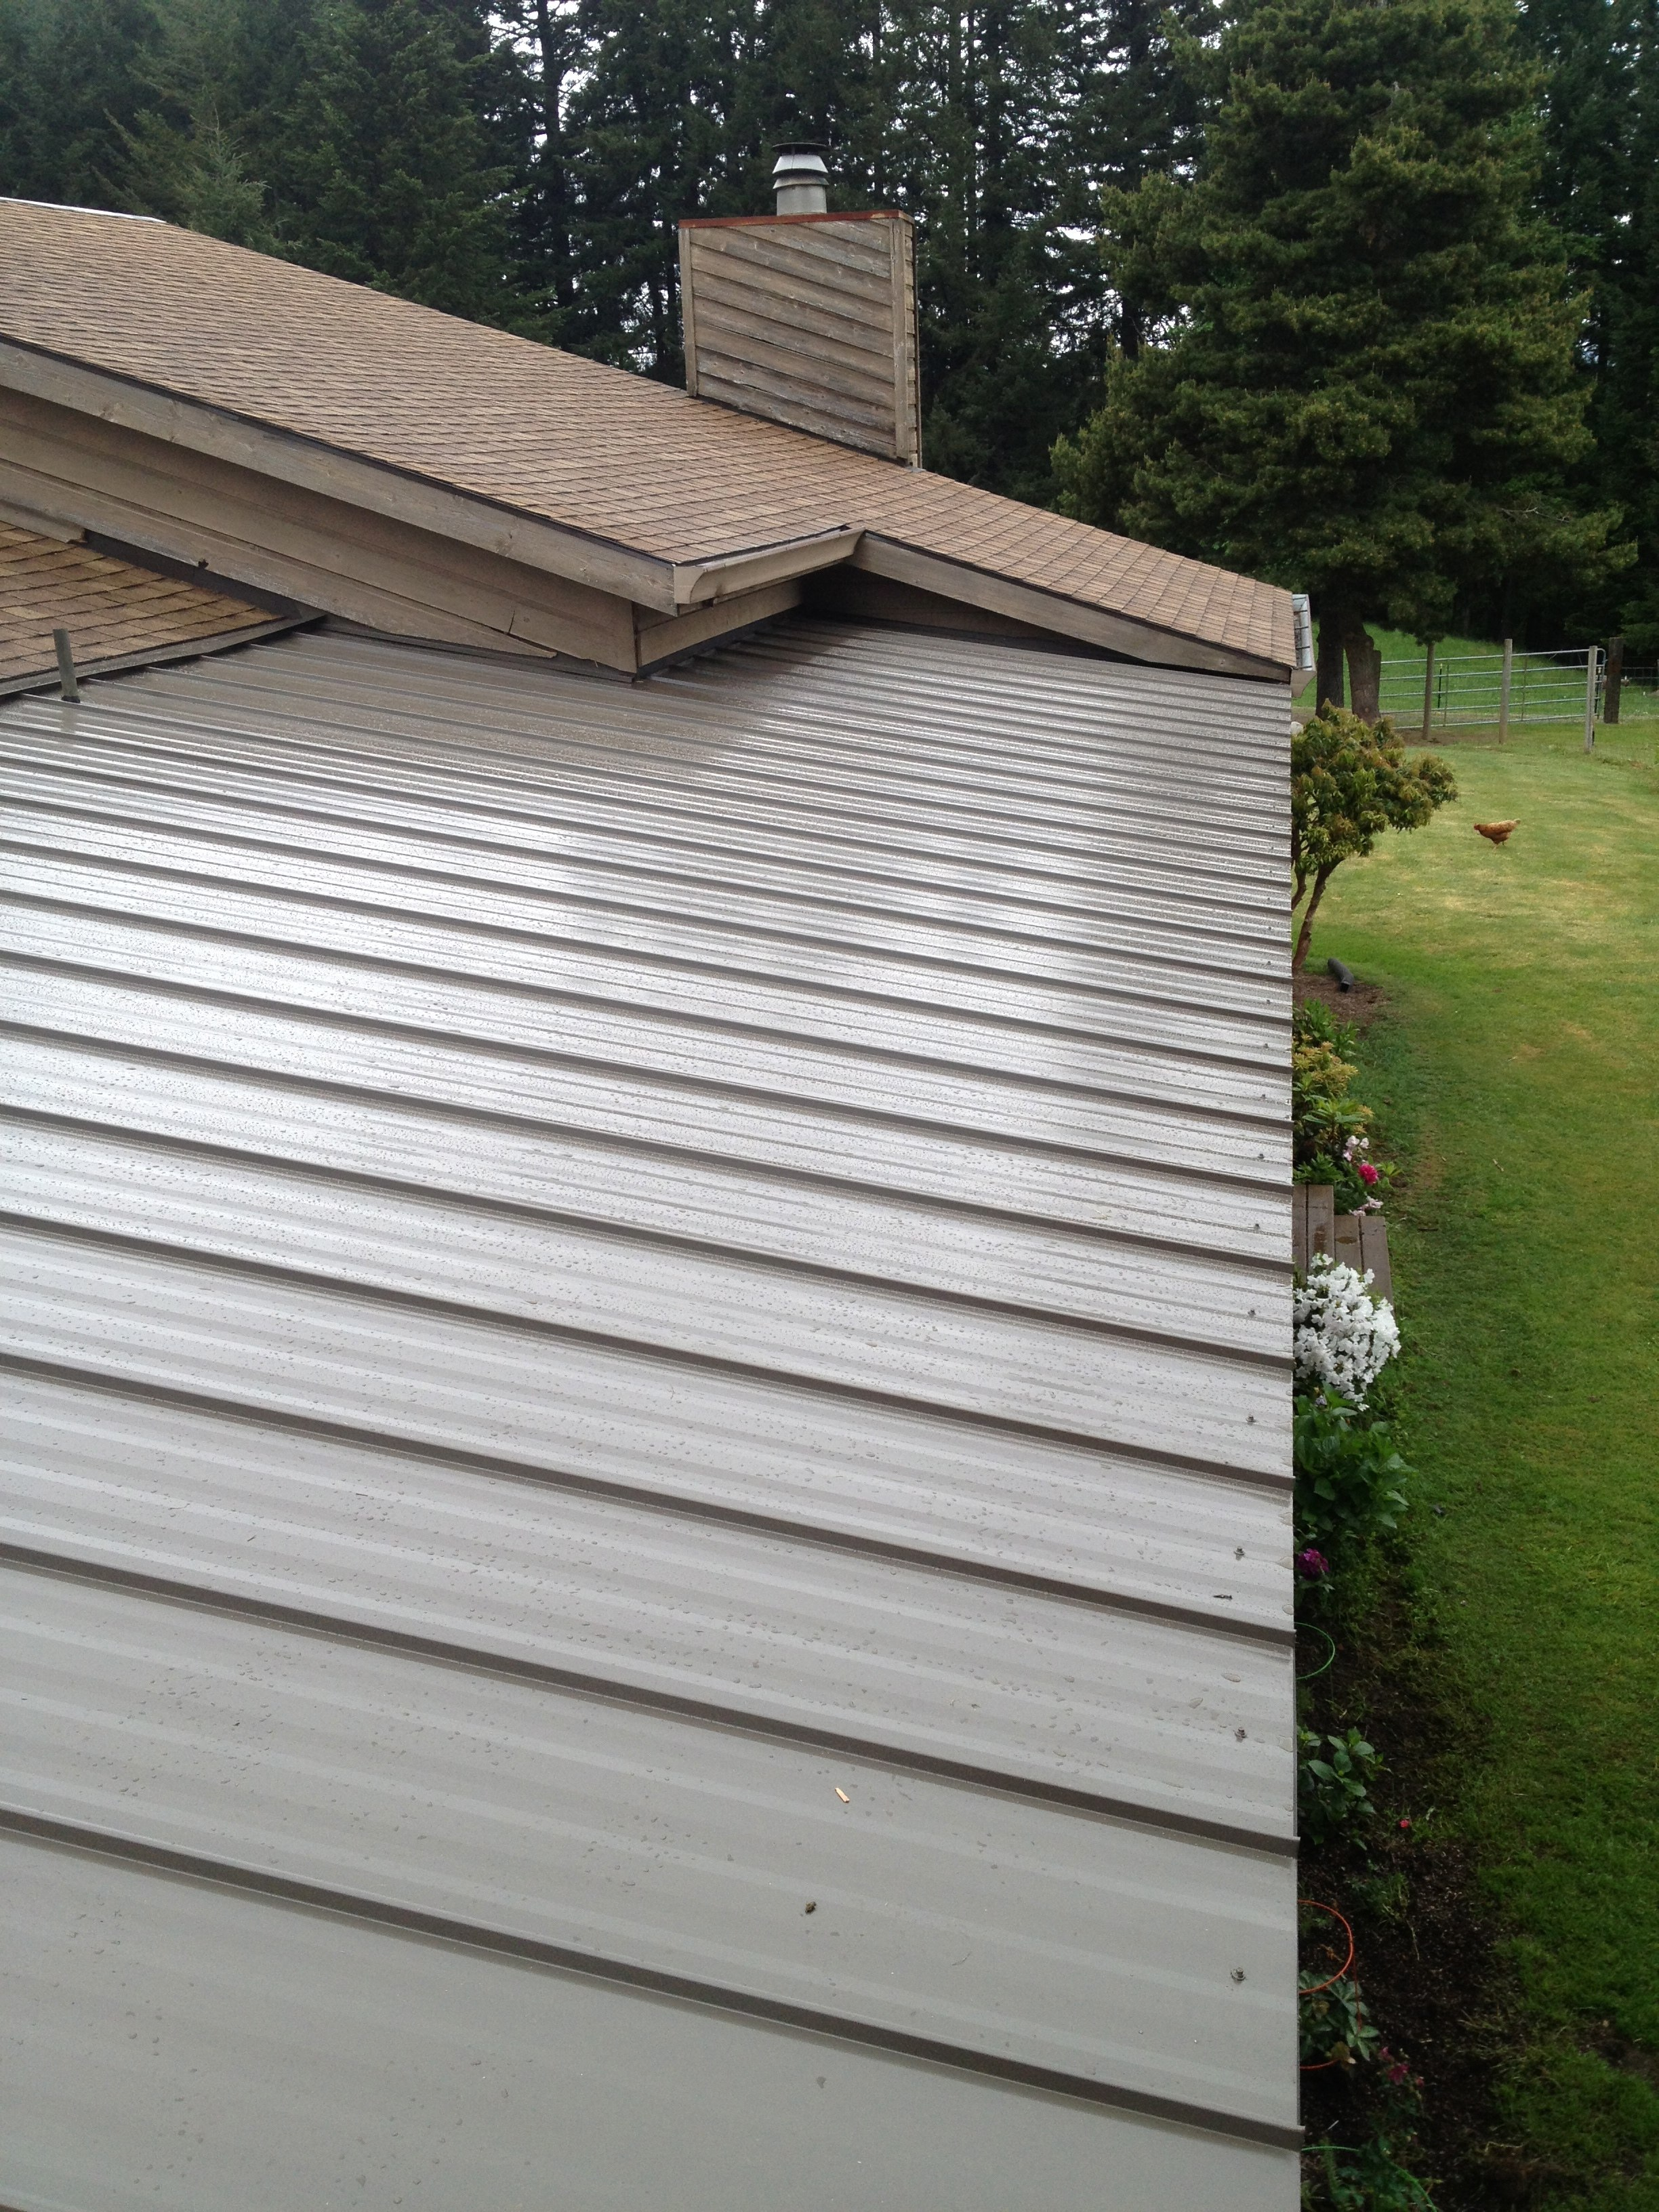 New overhang and Metal Roofing